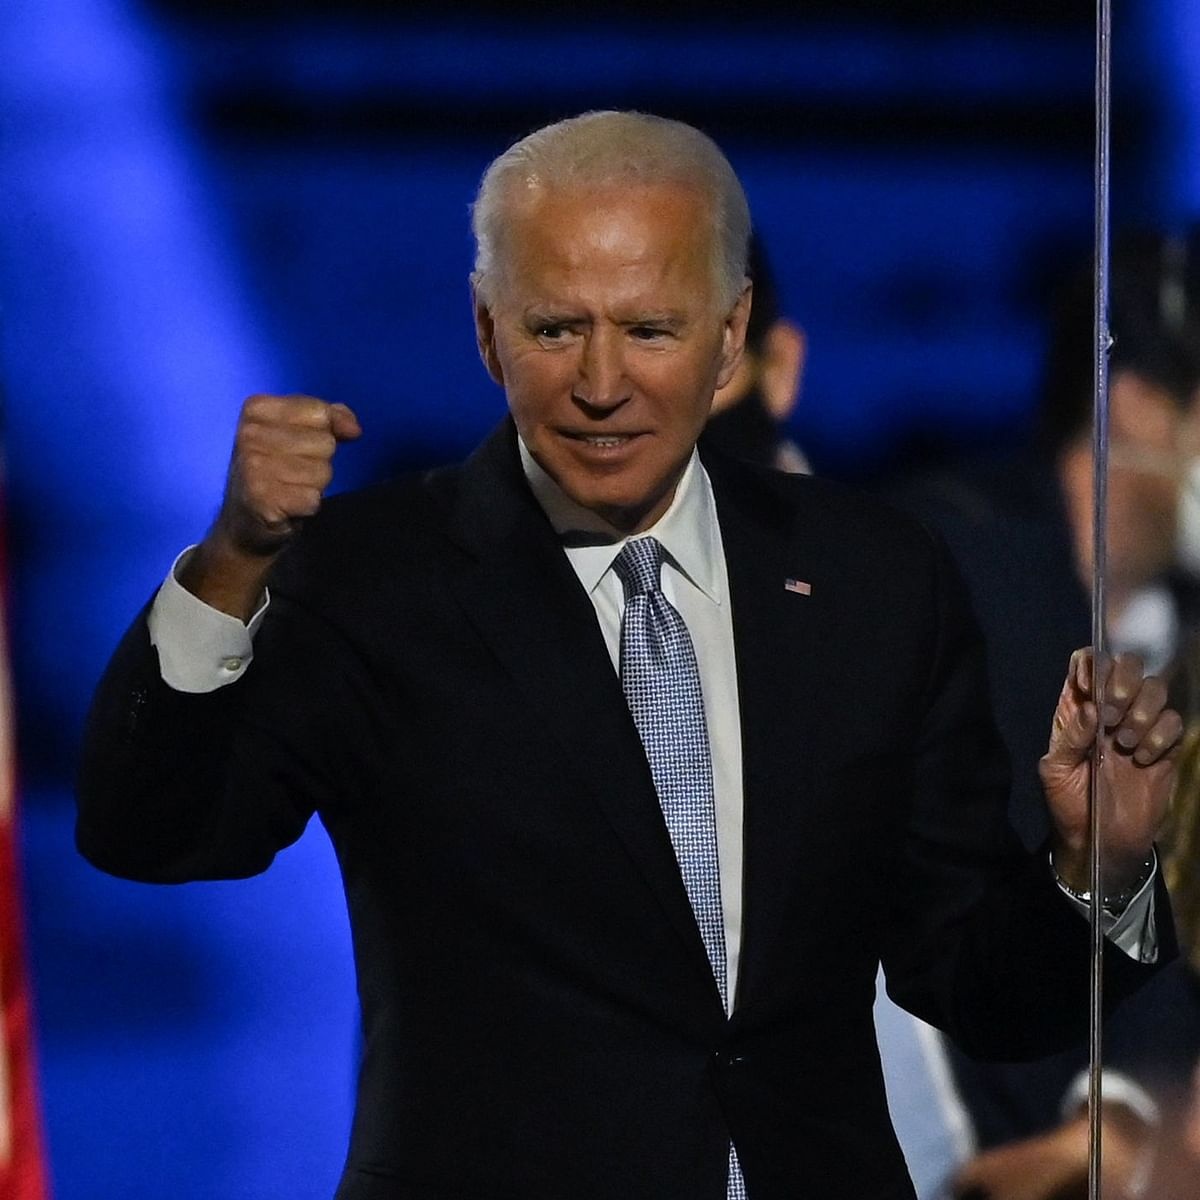 India Inc looks forward to enhanced India-US ties after Joe Biden wins Presidential election